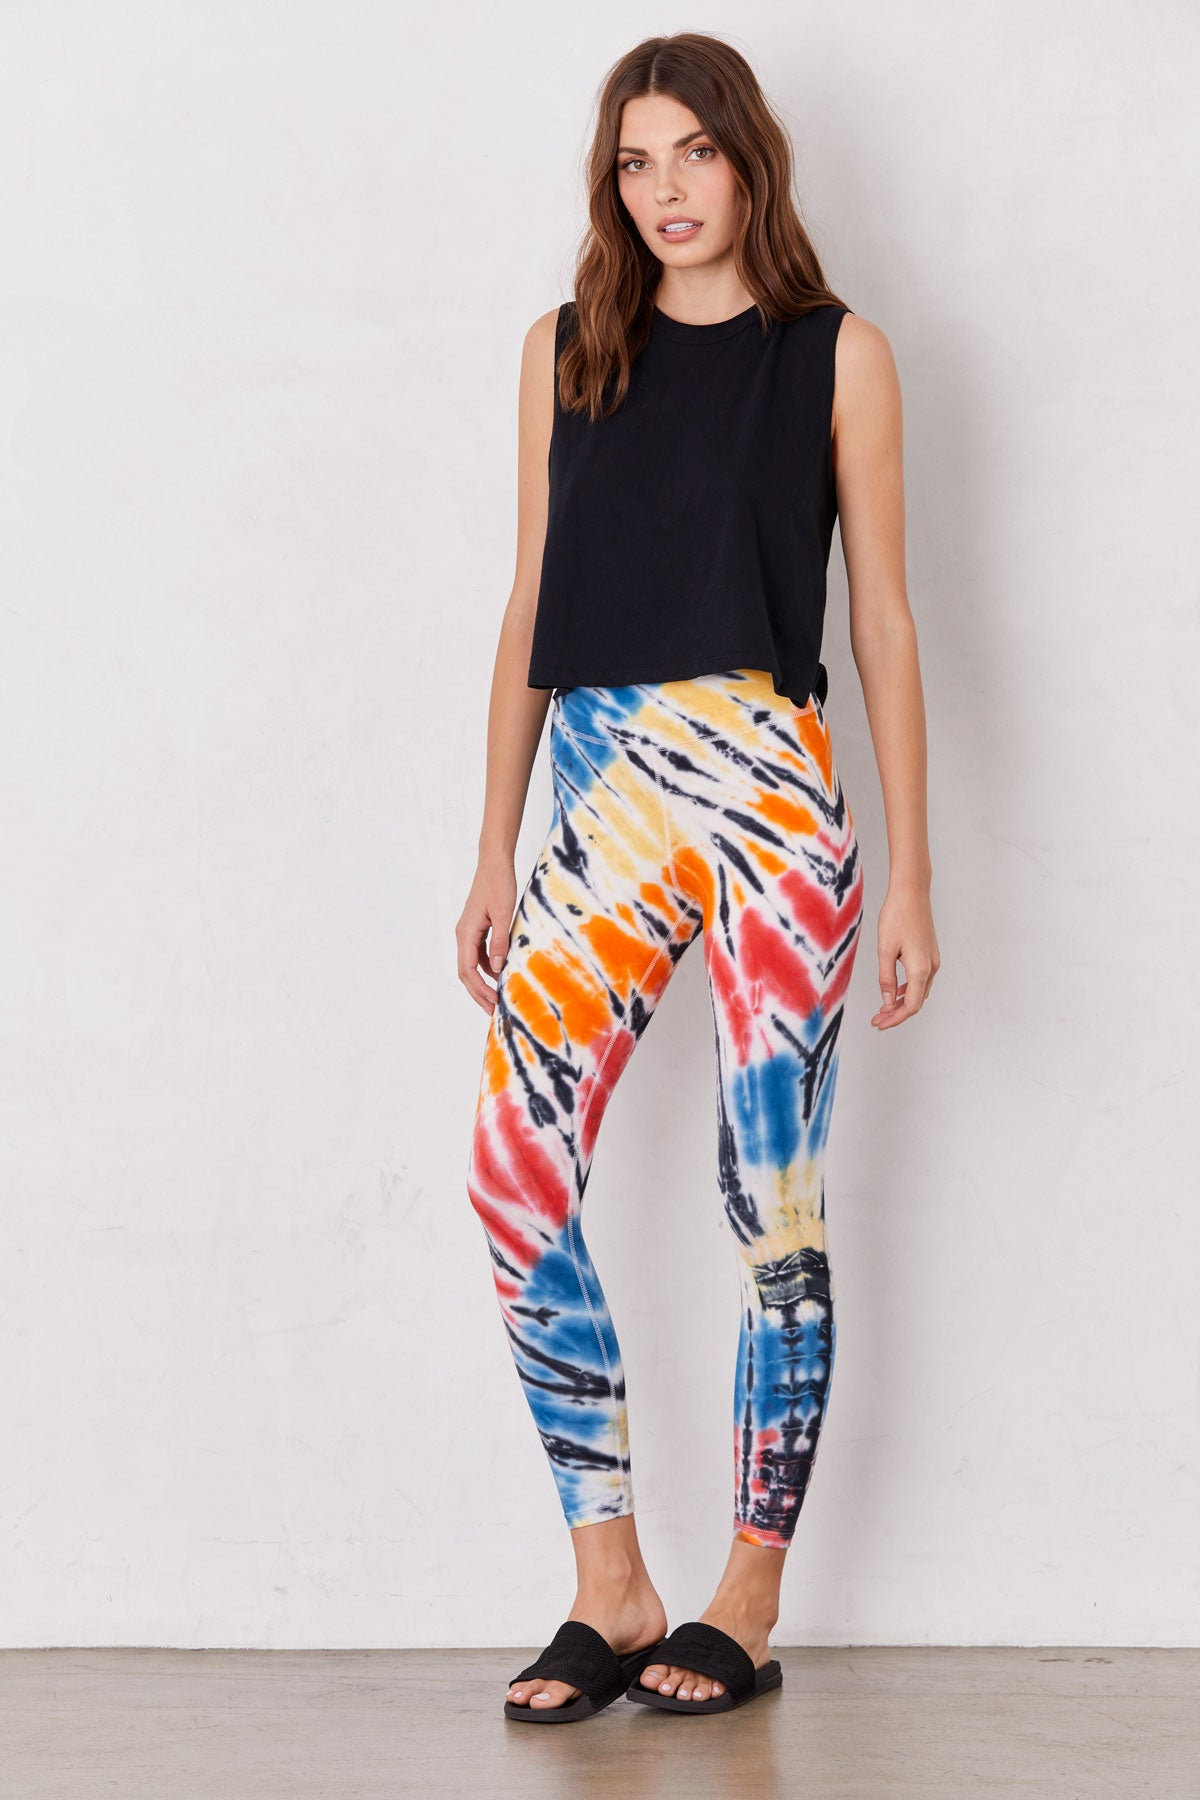 LNA Bright Rainbow Tie Dye Castor High Waist Leggings